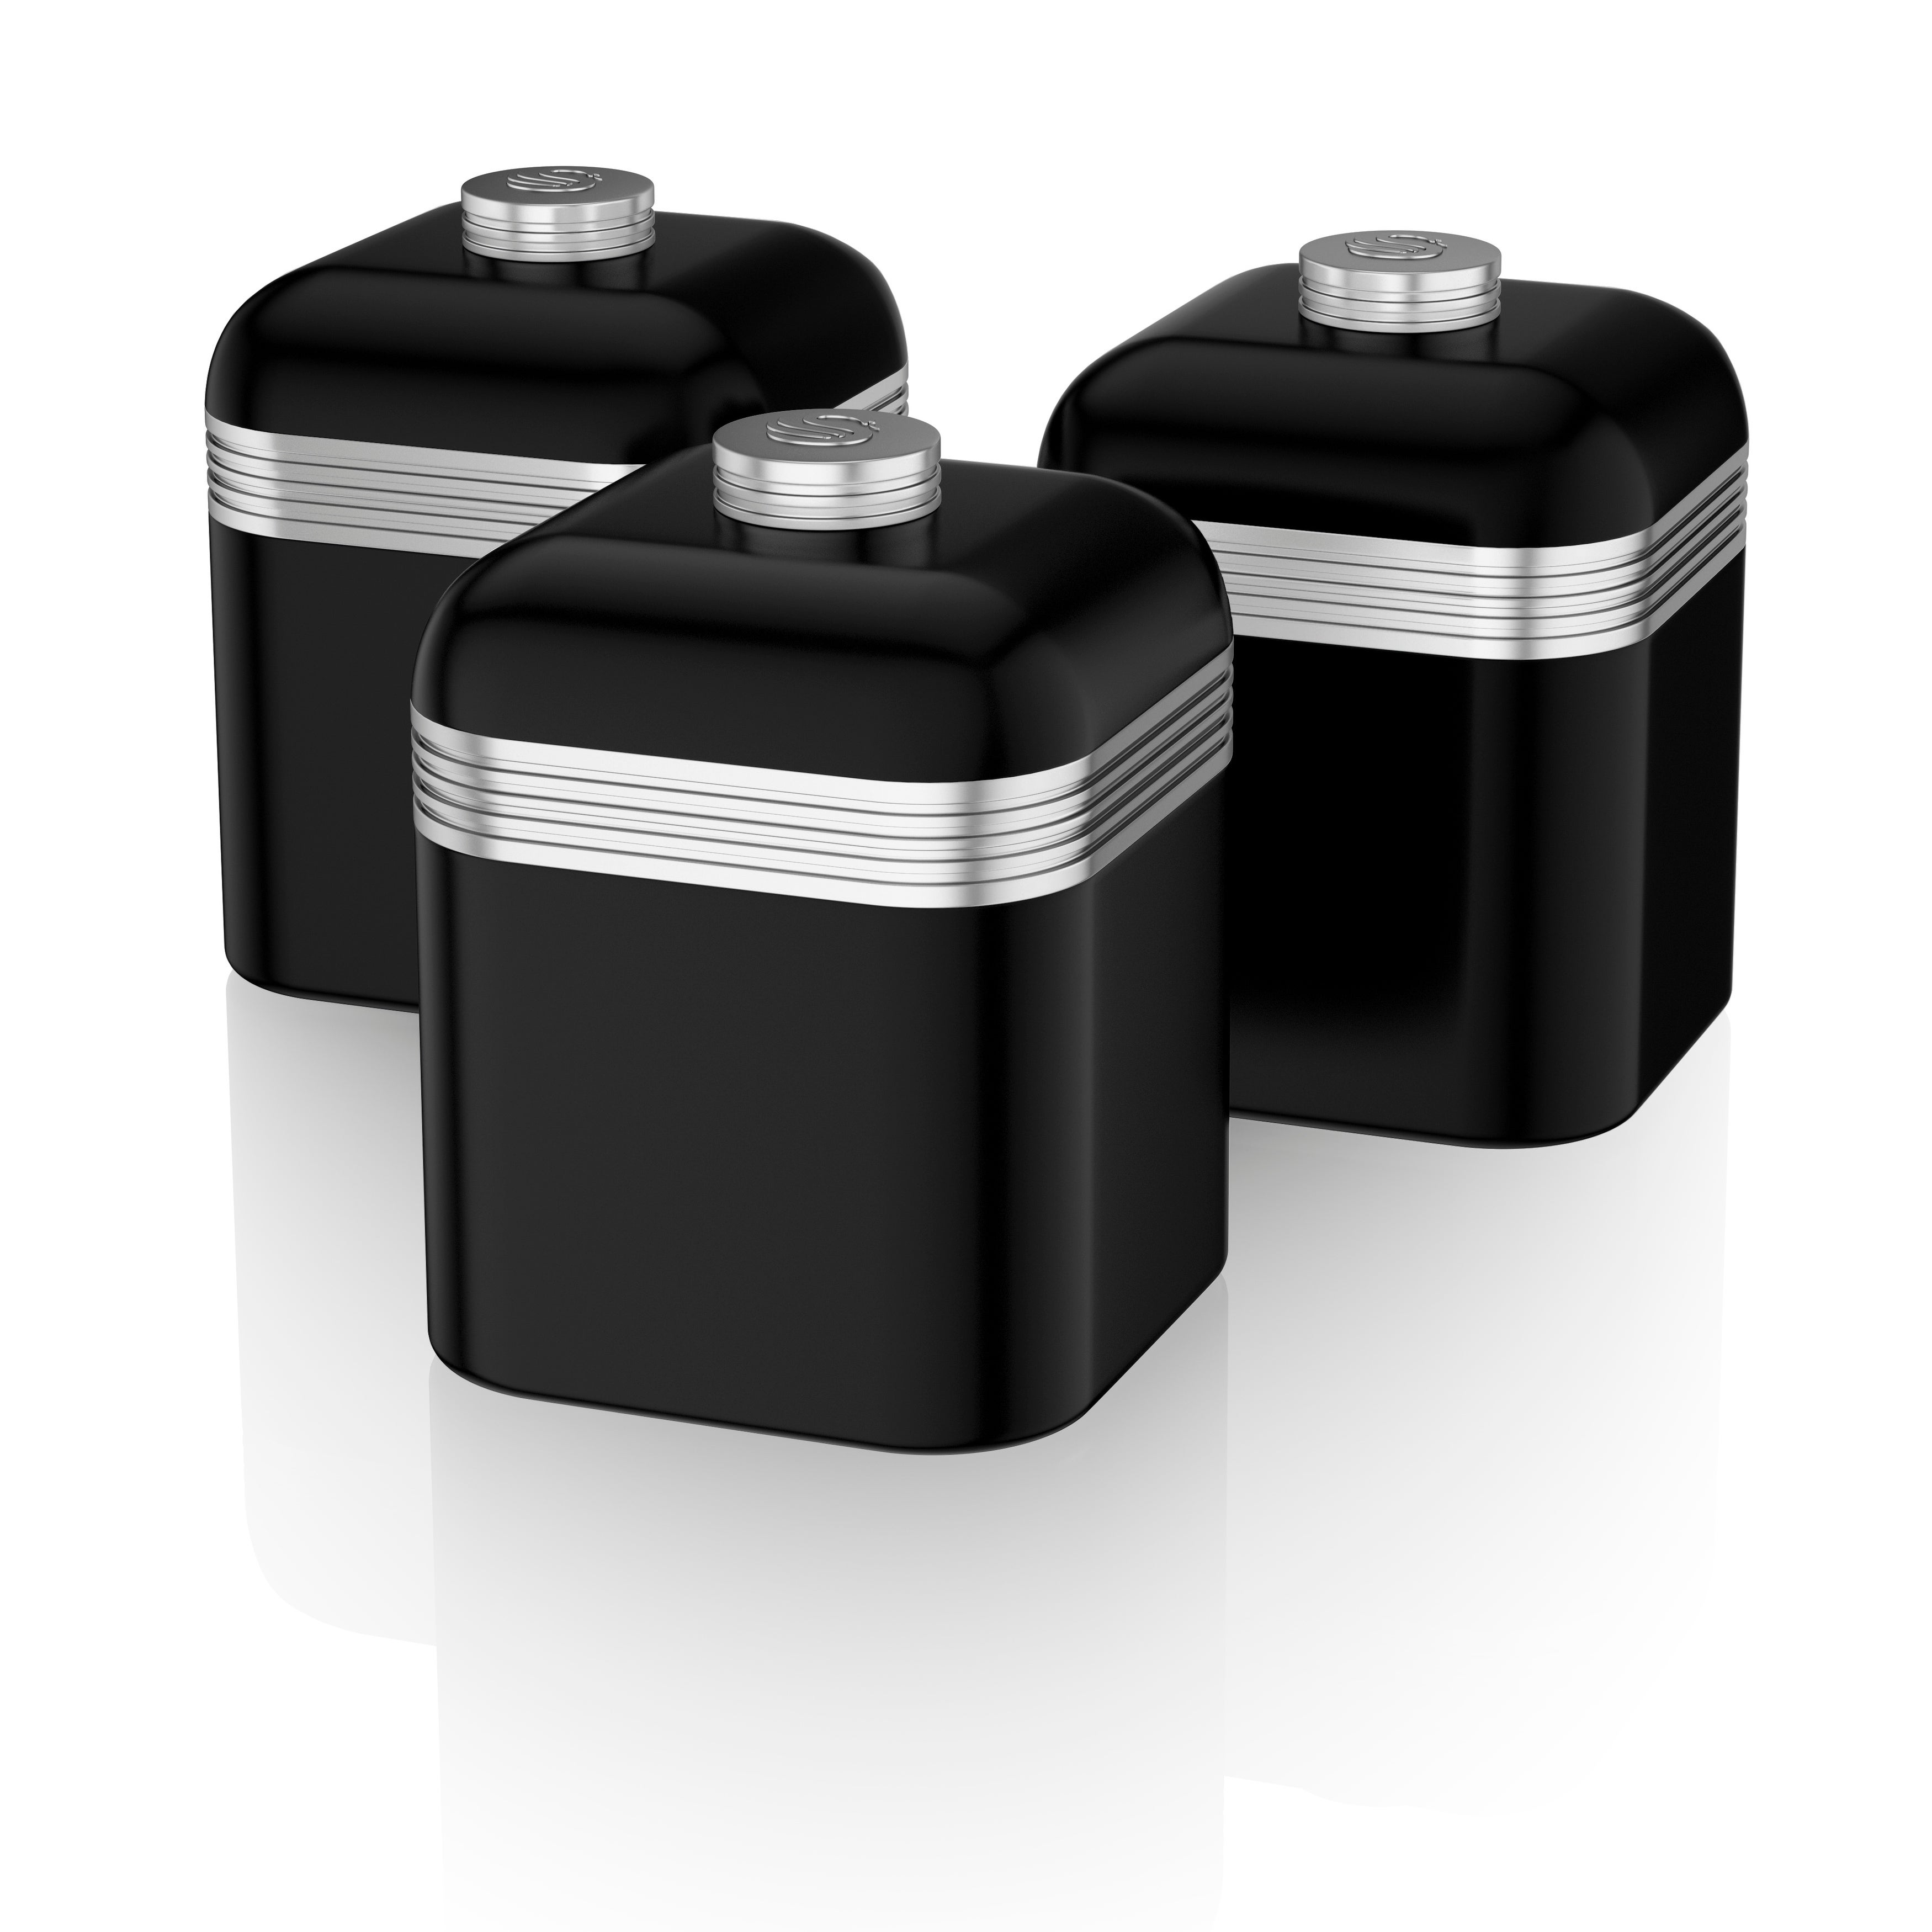 Delicieux Retro 3 Cannisters Black